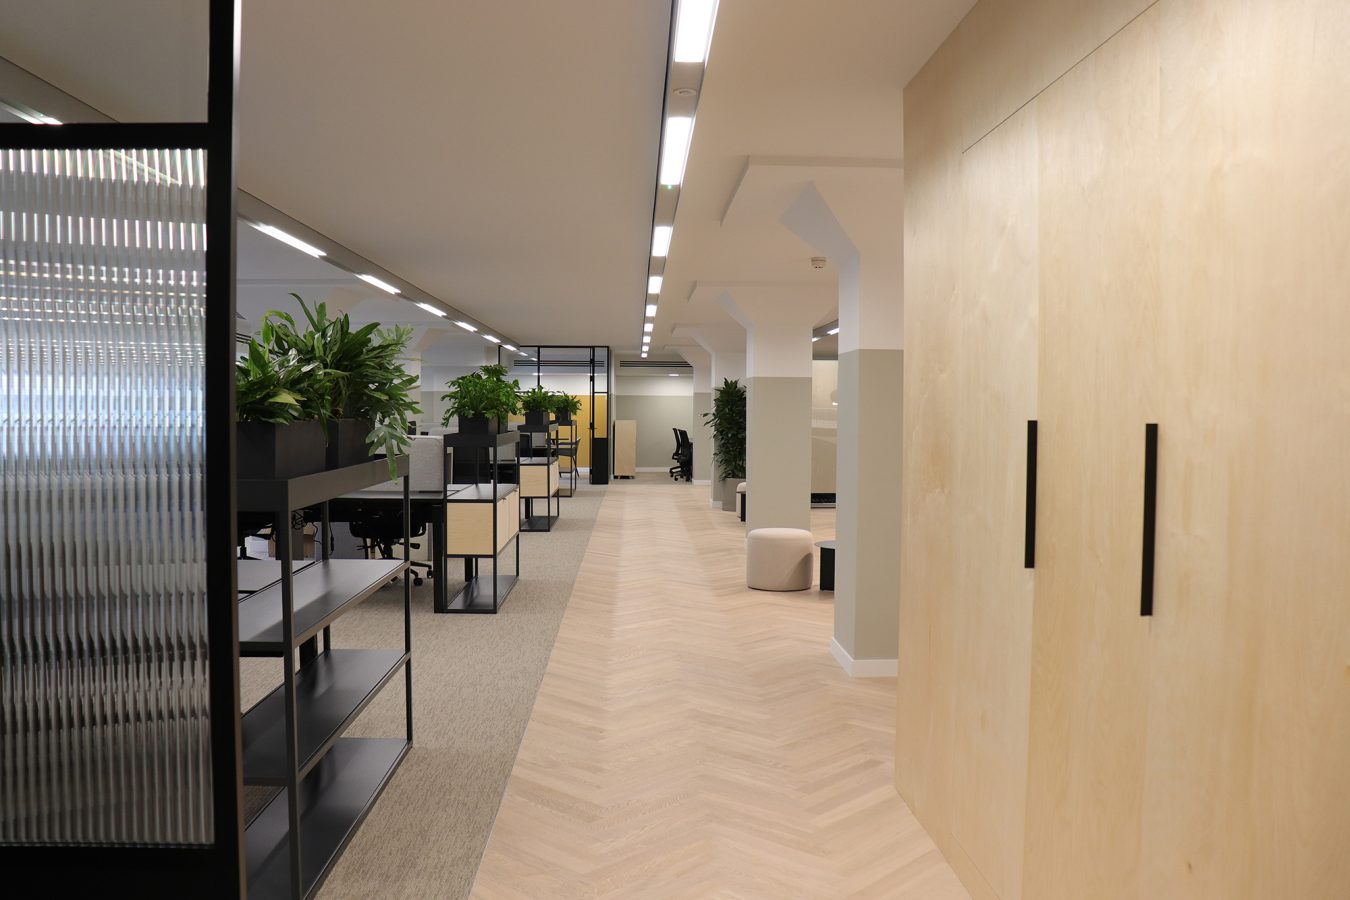 Plug and play scheme in a workplace decorated with neutral parquet flooring, open plan workspace and wooden storage wall.